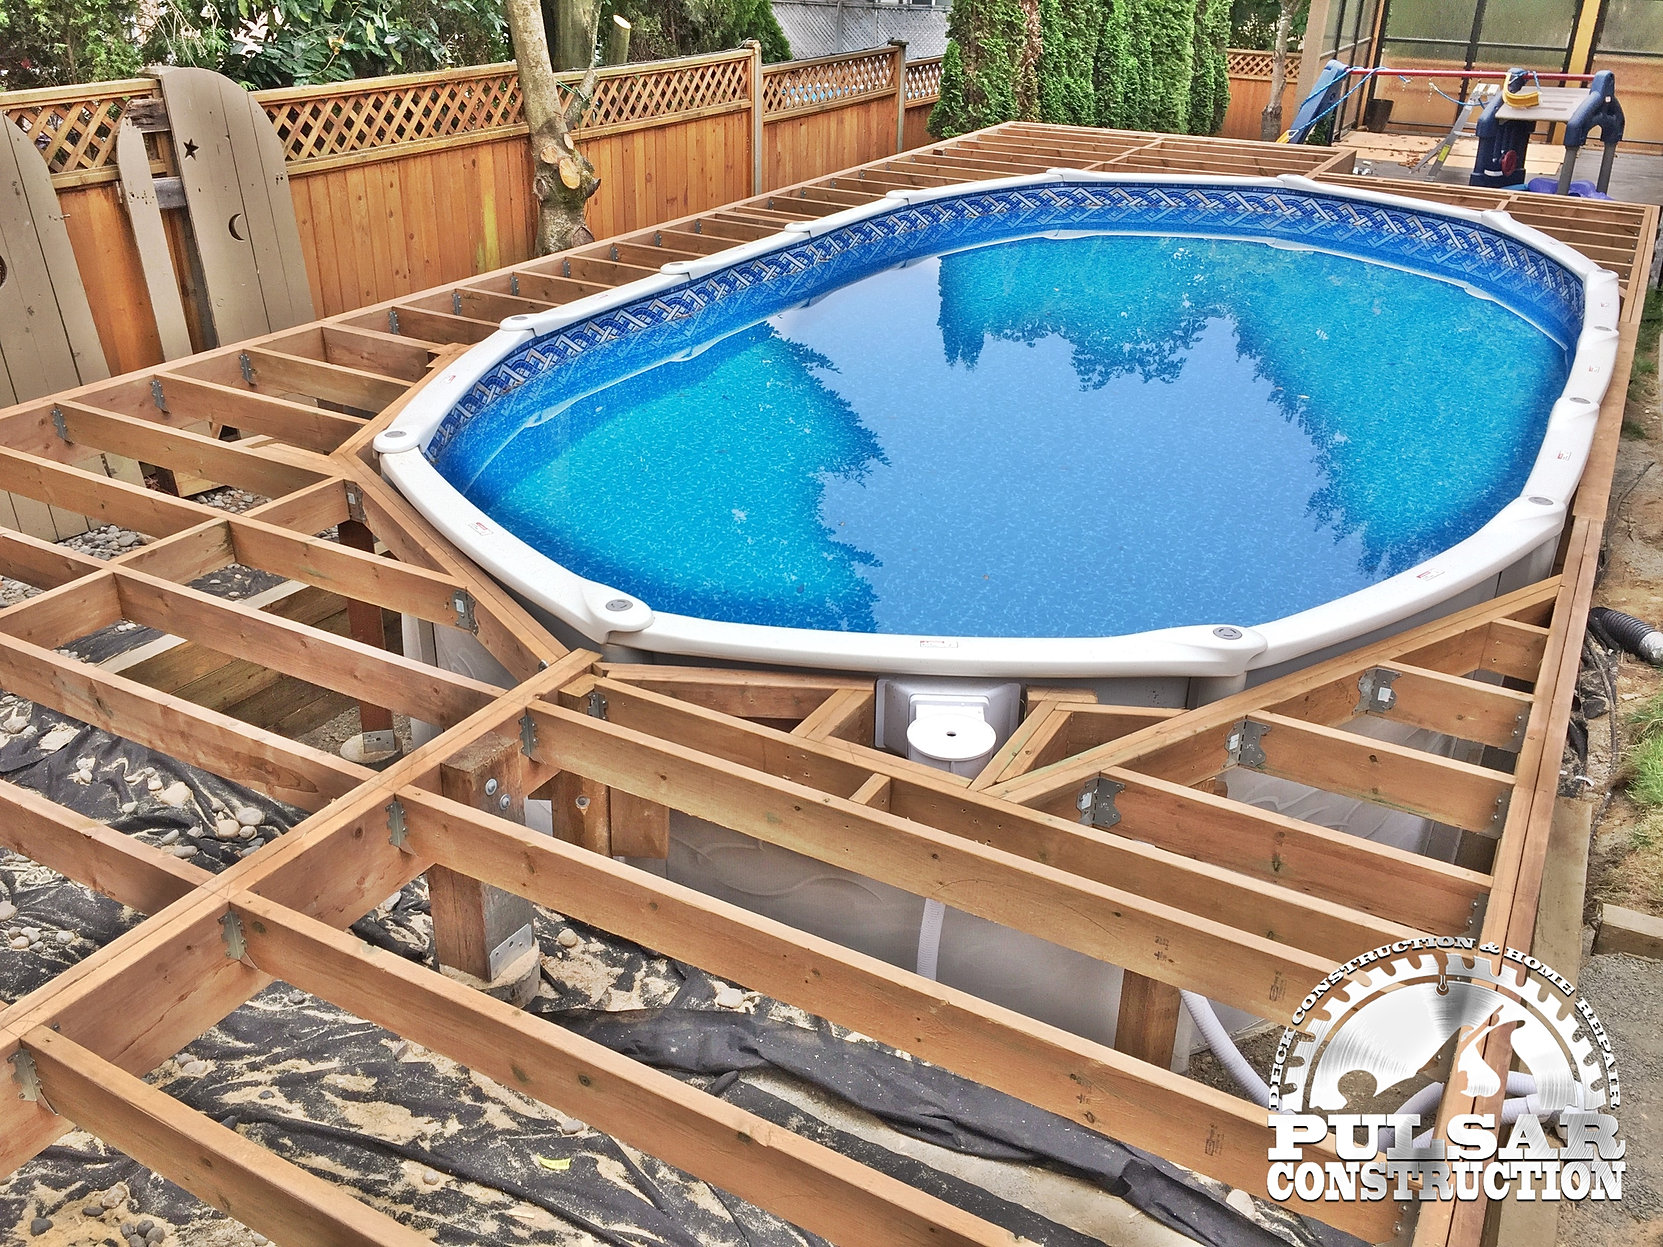 pulsar construction above ground pool deck 45 0221